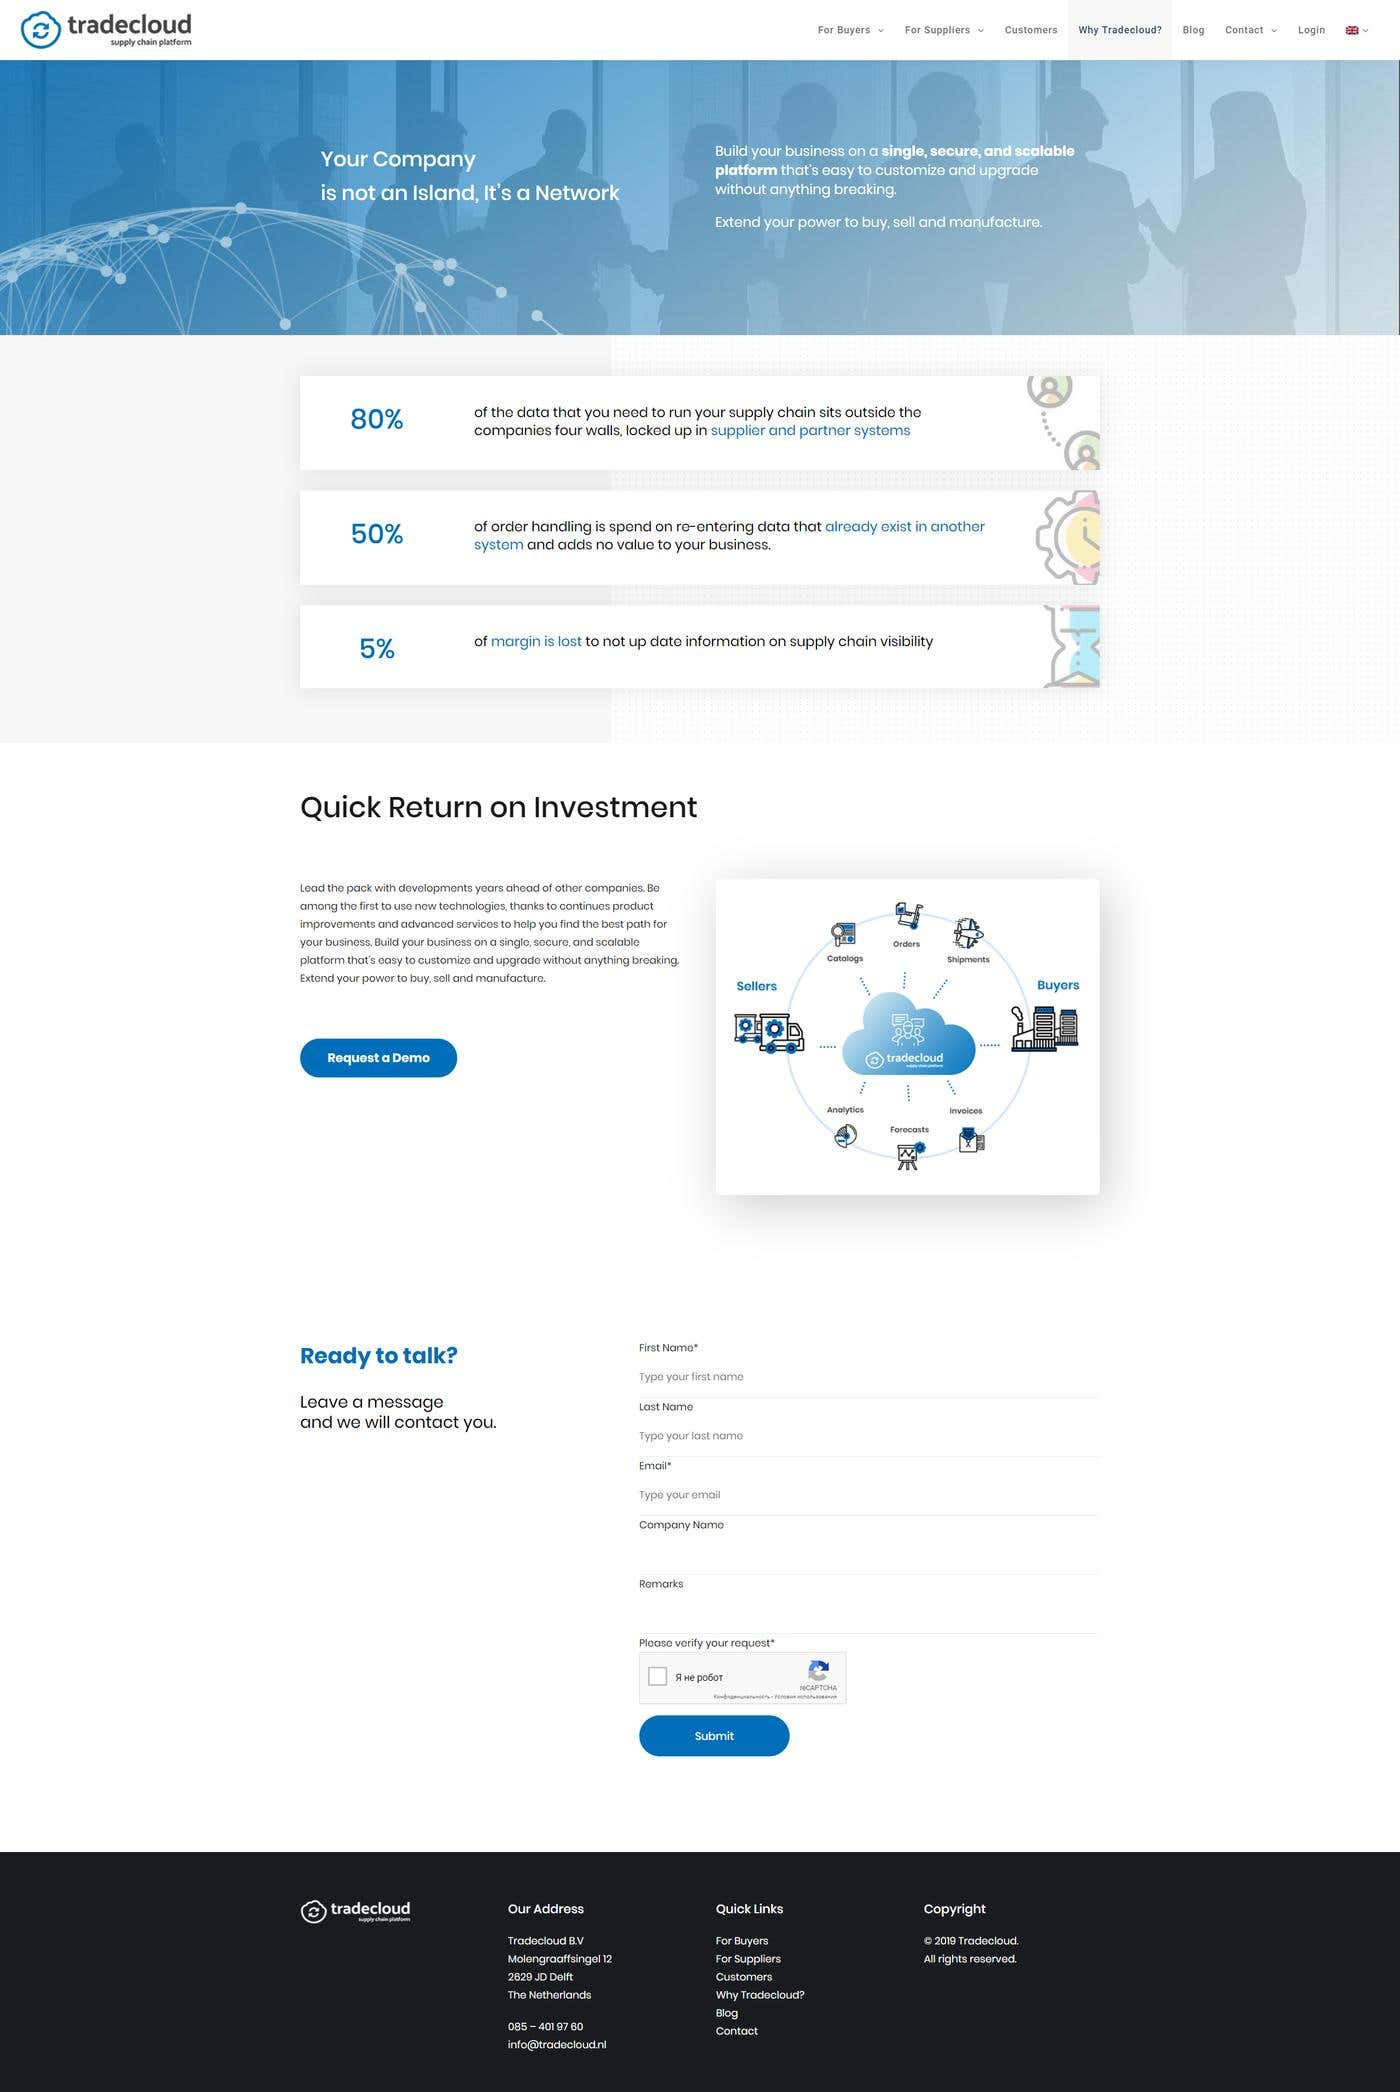 screencapture-tradecloud1-en-why-tradecloud-2-2019-04-22-15_44_05.png